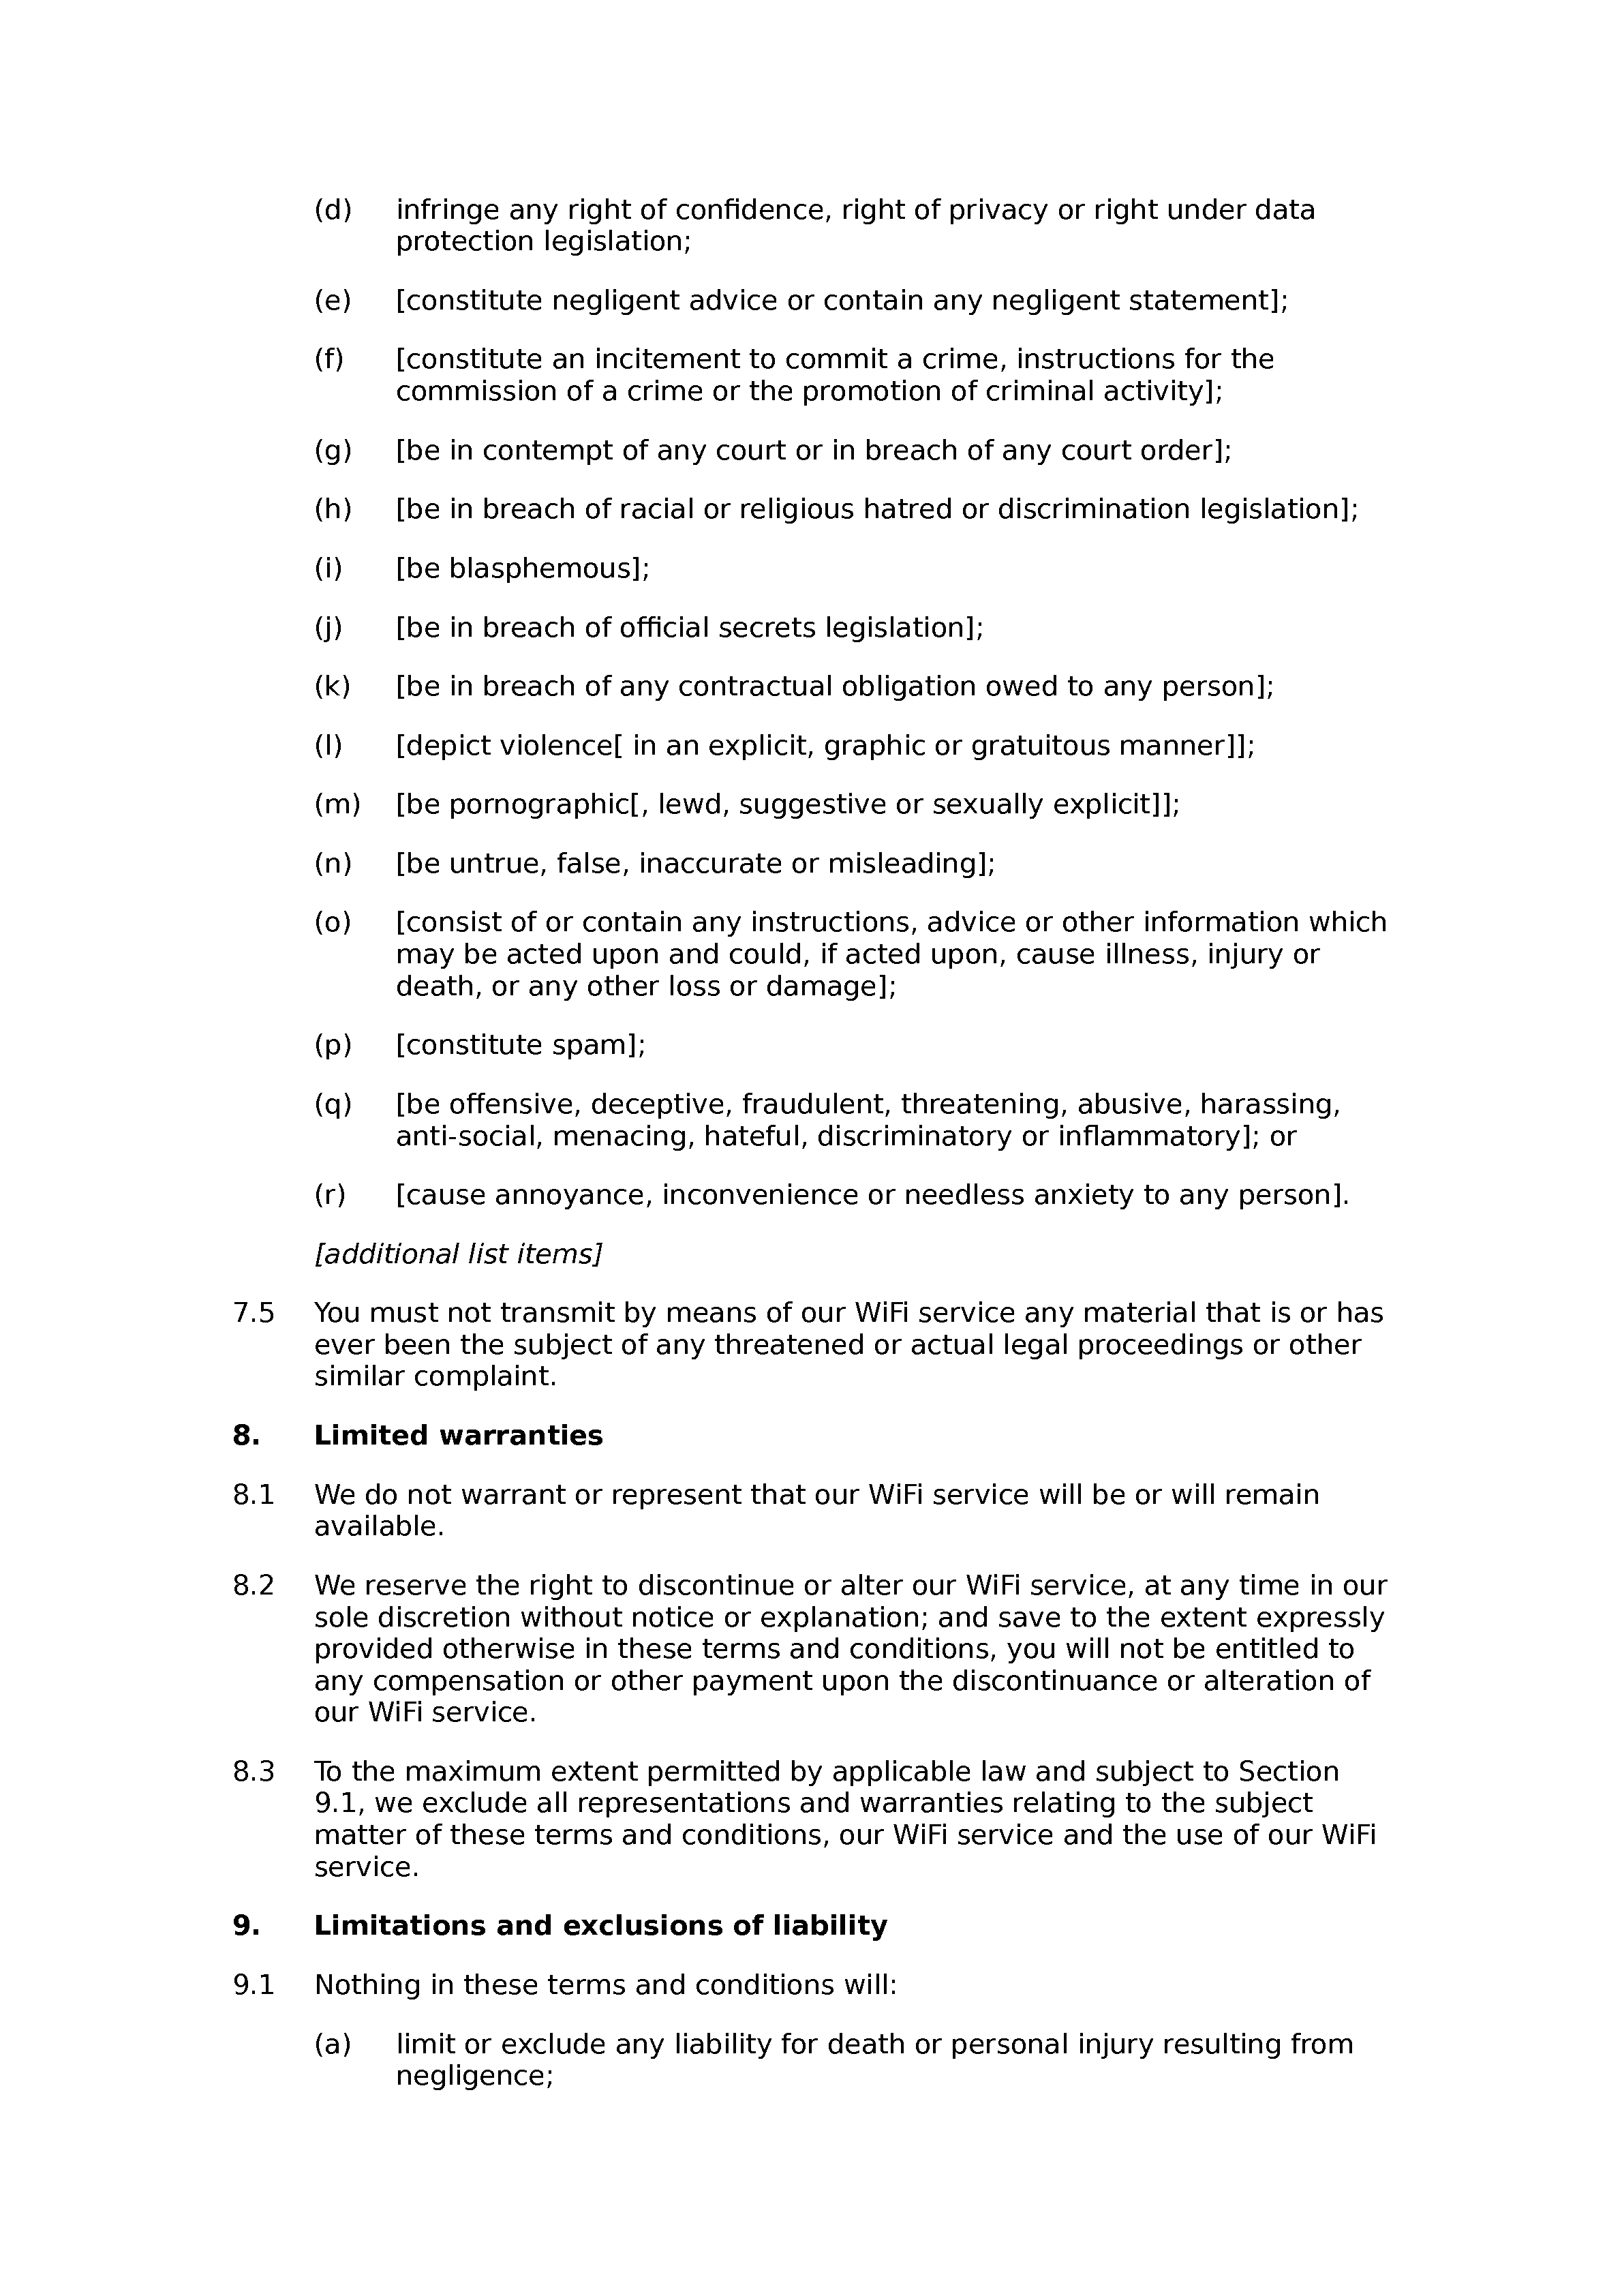 WiFi terms and conditions document preview